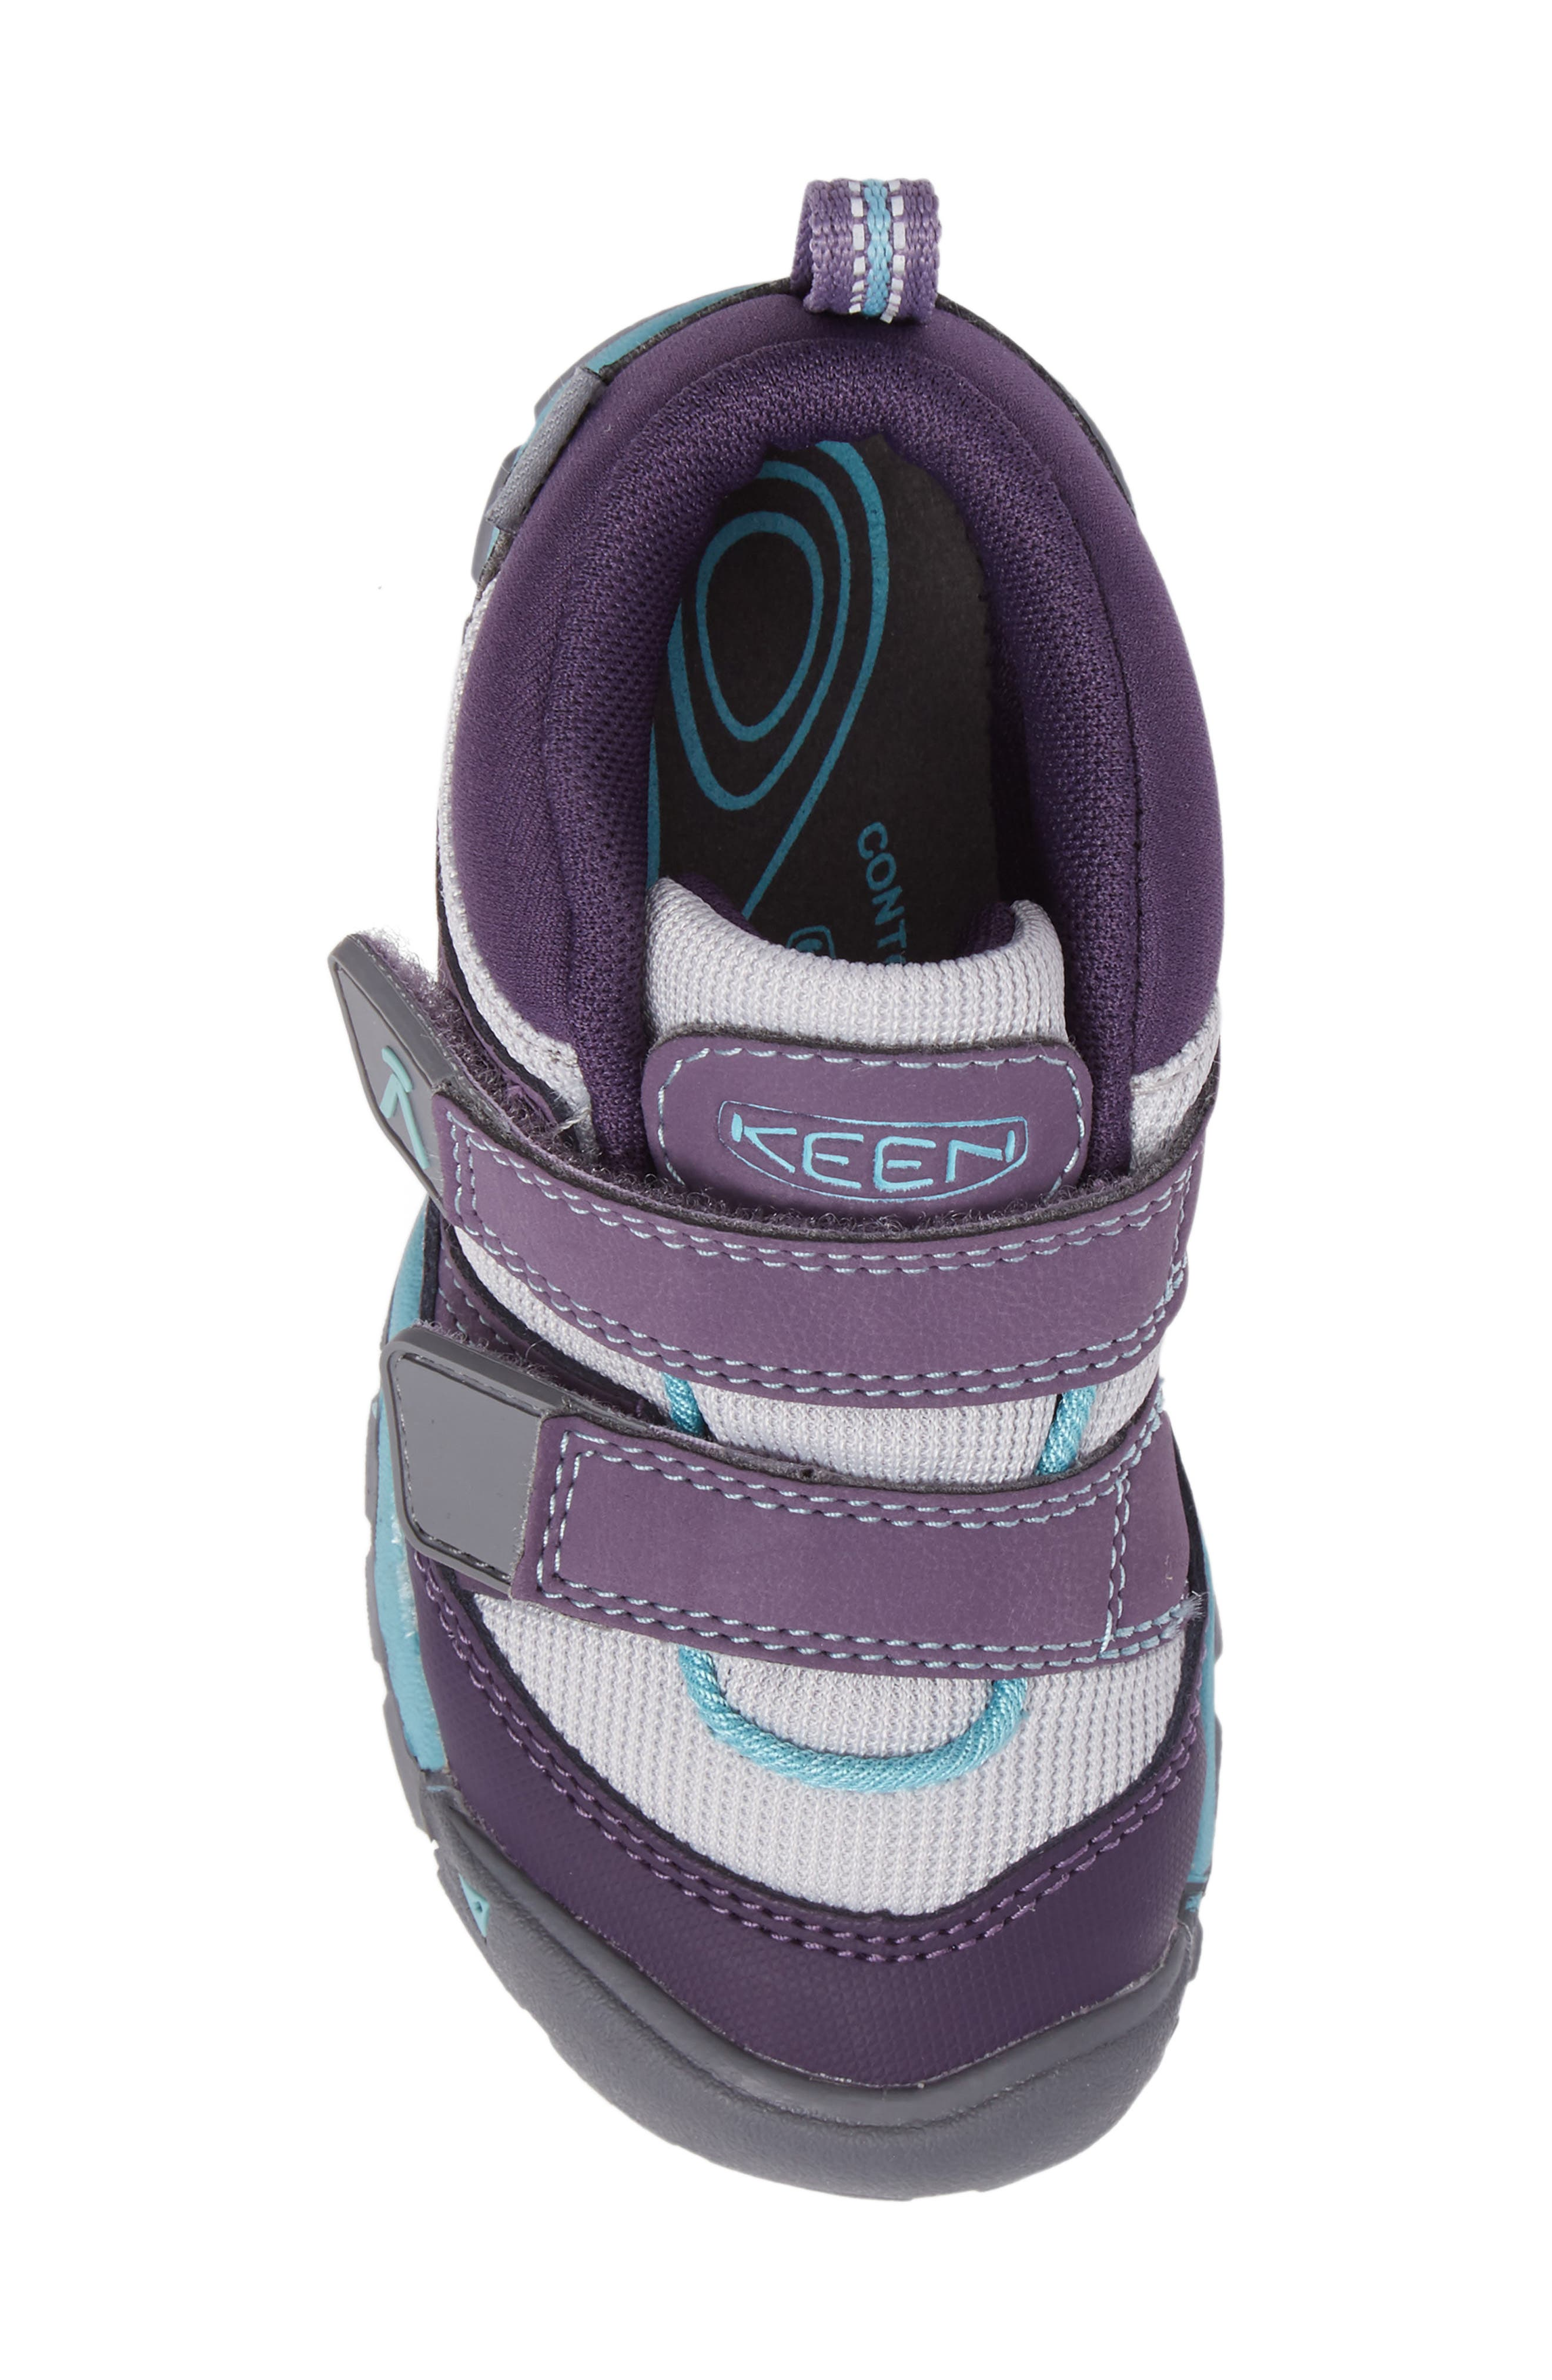 Peek-a-Shoe Sneaker,                             Alternate thumbnail 14, color,